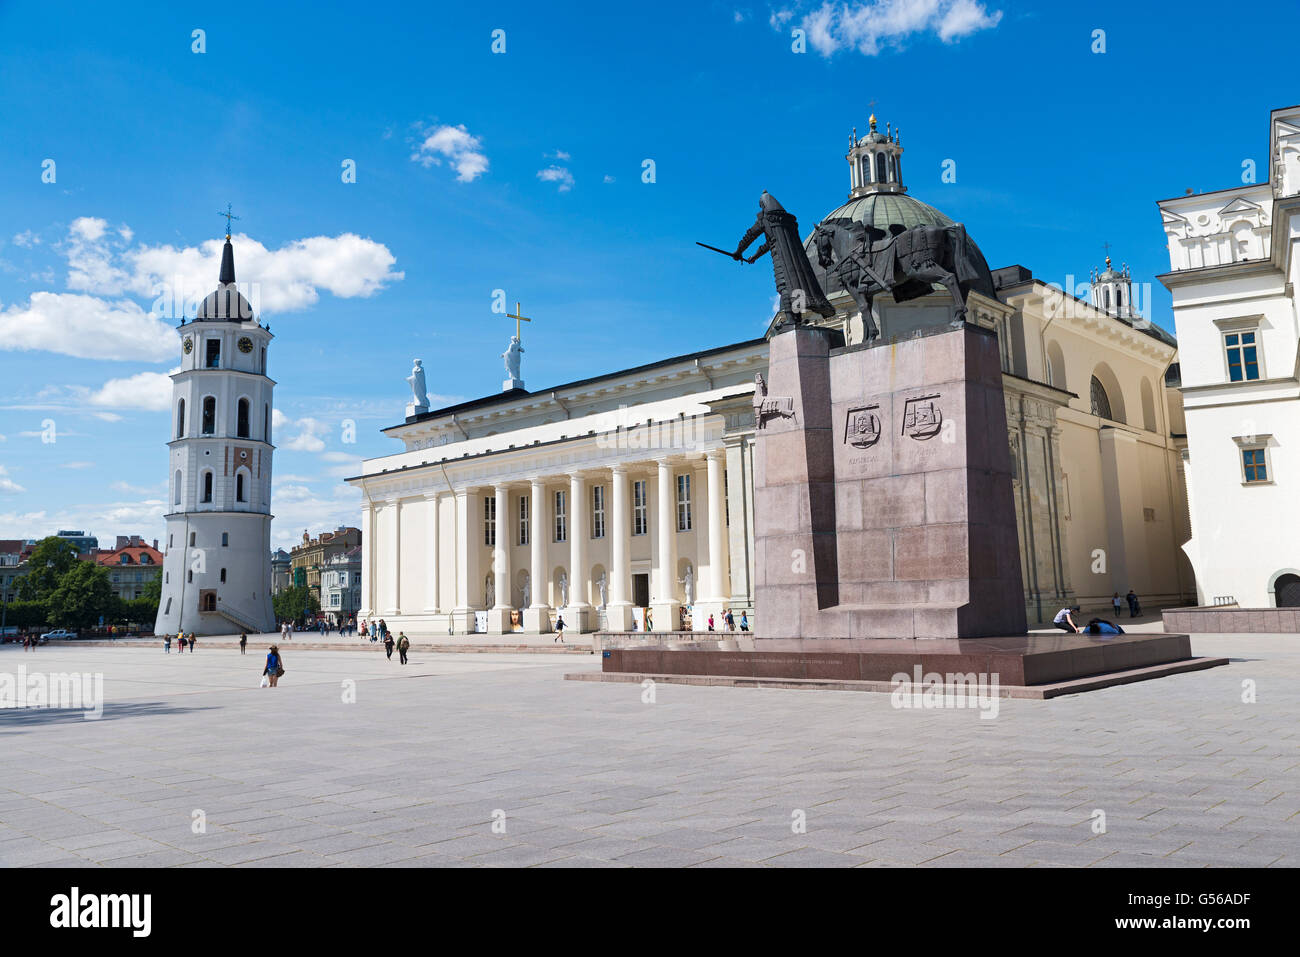 People at the Cathedral Square near the Cathedral of Vilnius - Stock Image